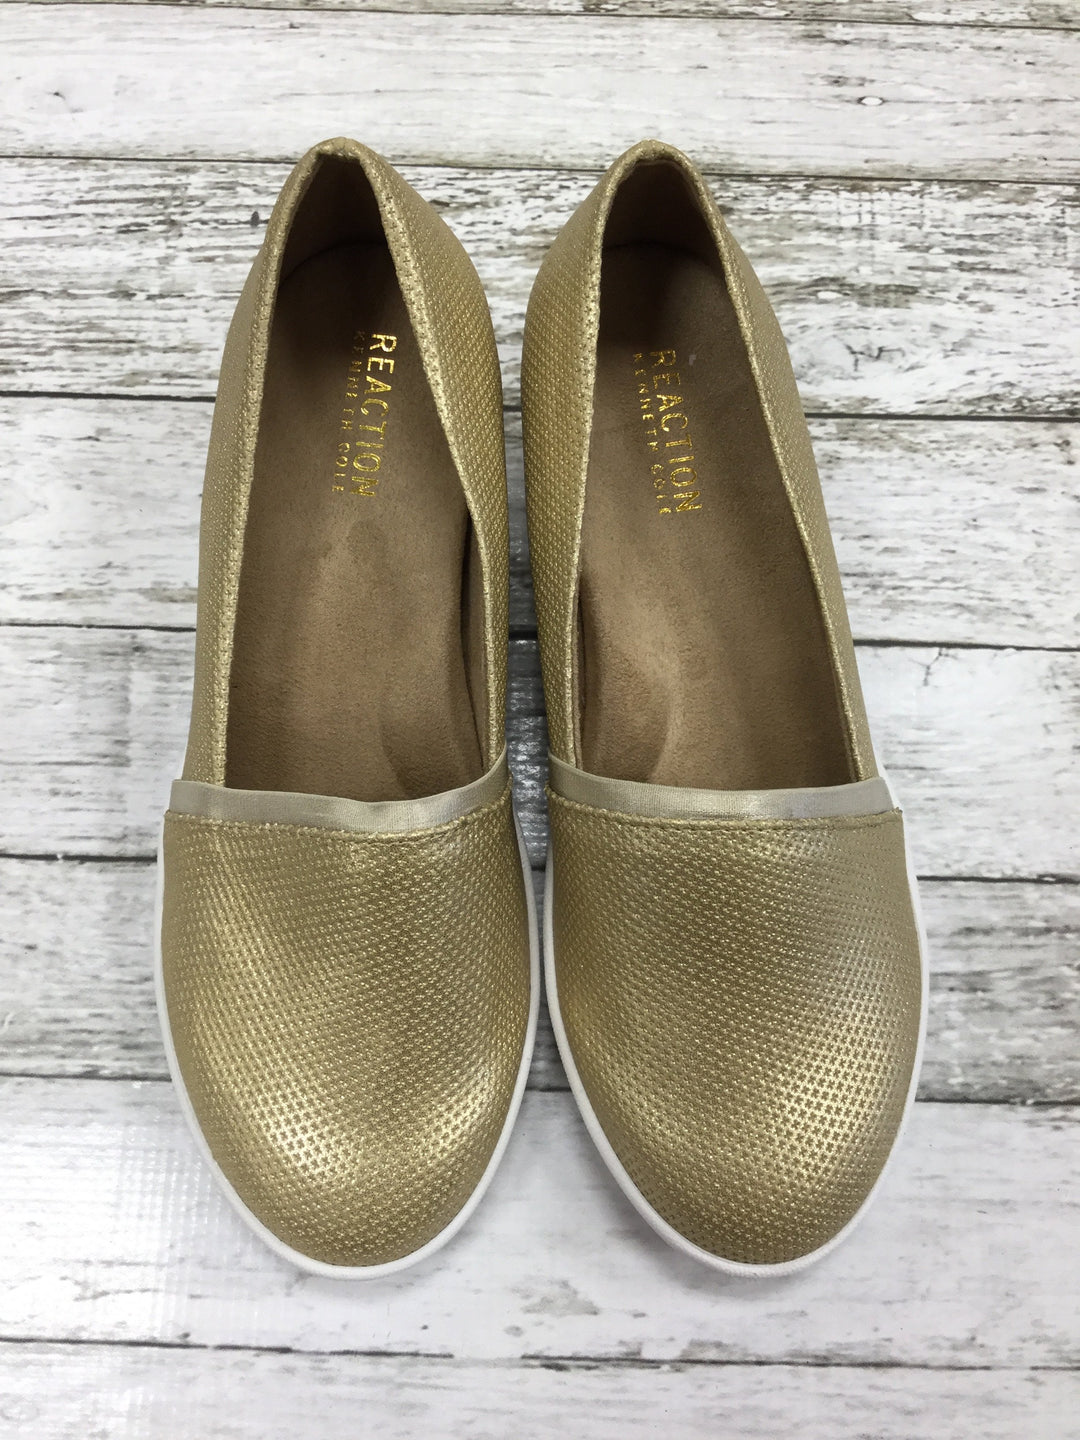 Primary Photo - brand: kenneth cole reaction , style: shoes low heel , color: gold , size: 8 , sku: 127-3371-43564